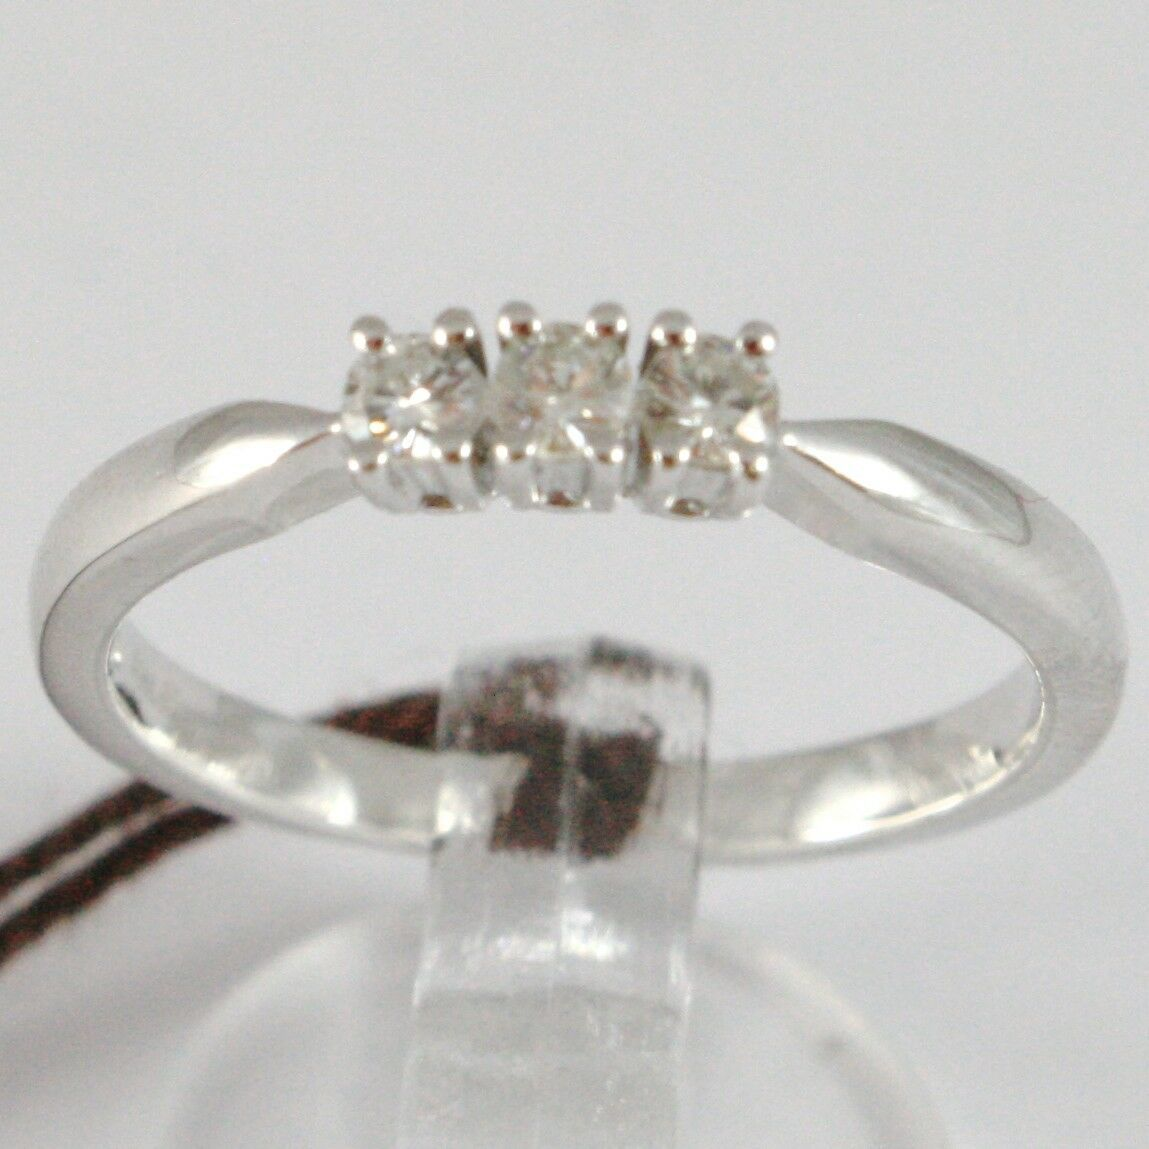 WHITE GOLD RING 750 18K, TRILOGY 3 DIAMONDS CARAT TOTAL 0.12, STEM SQUARE